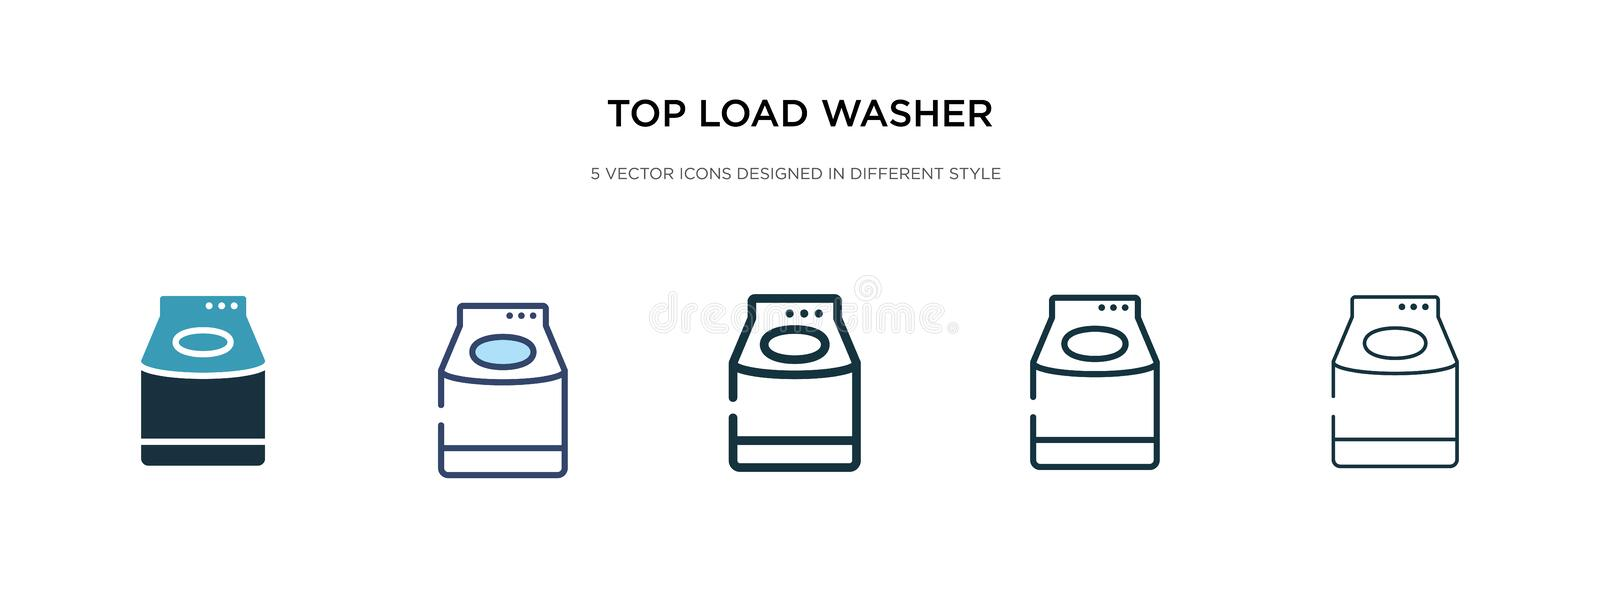 Top load washer icon in different style vector illustration. two colored and black top load washer vector icons designed in filled royalty free illustration